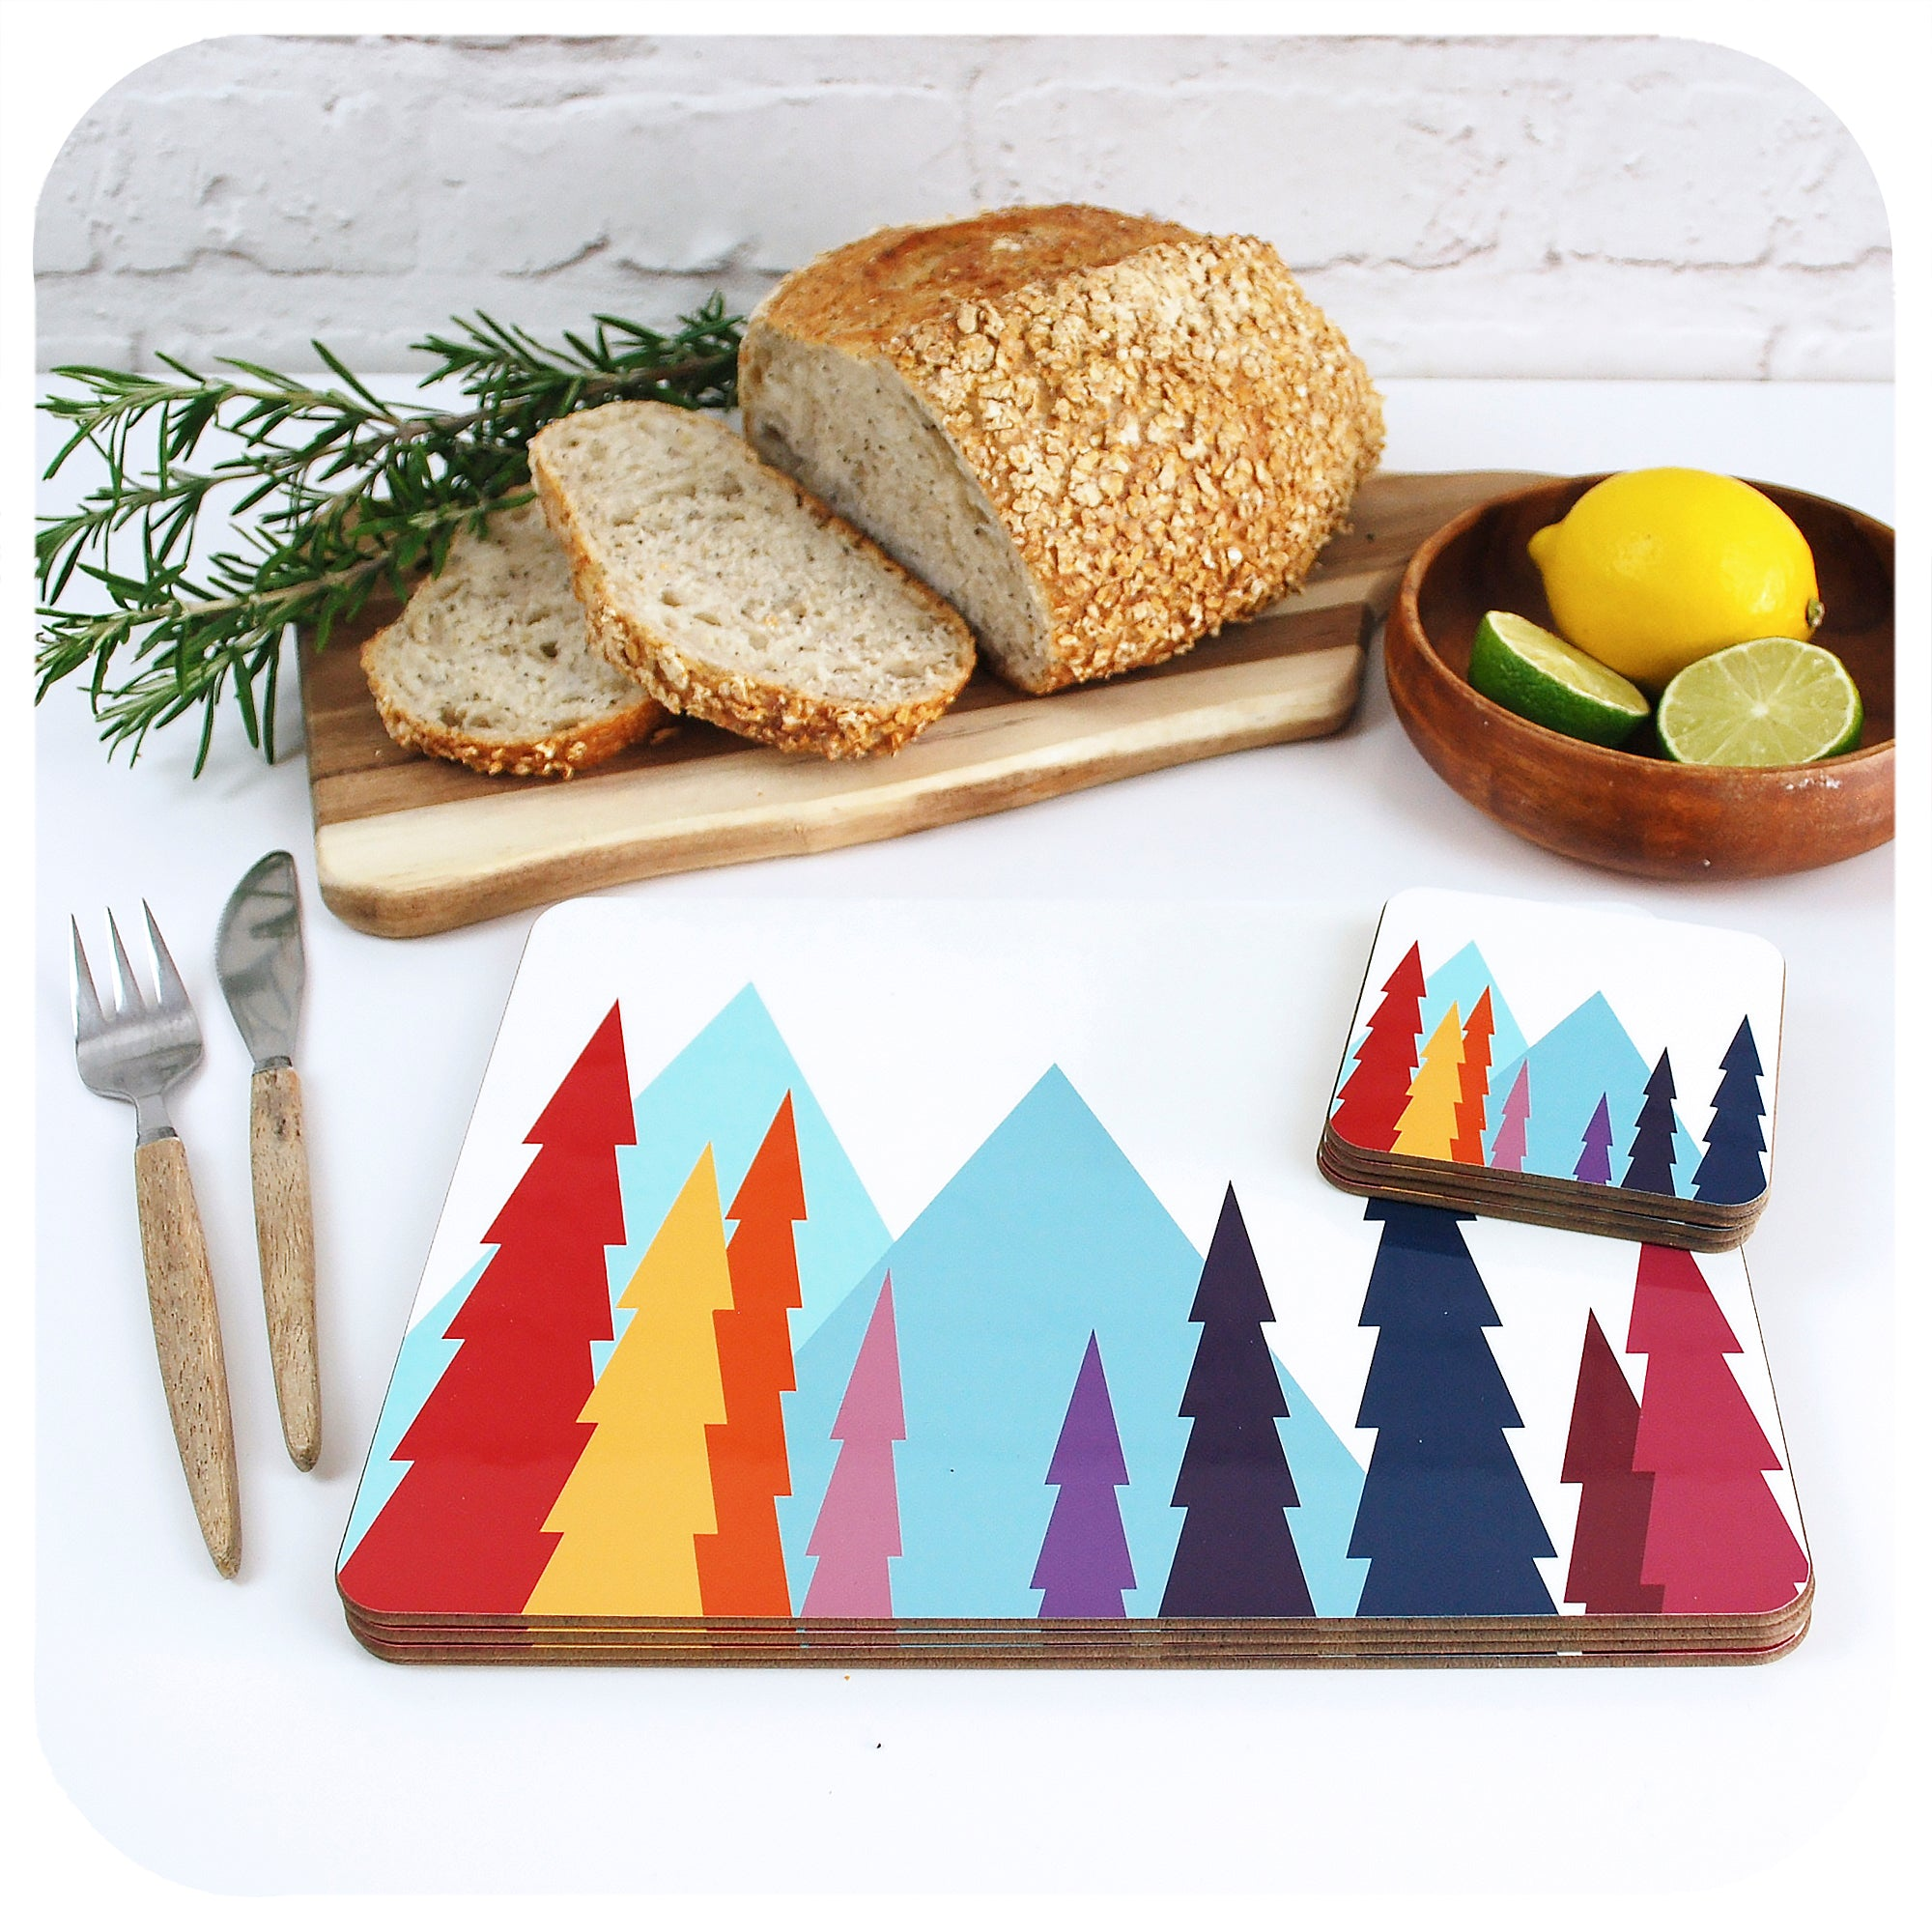 Nordic Trees Placemats and Coasters, on a table with bread and fruit | The Inkabilly Emporium